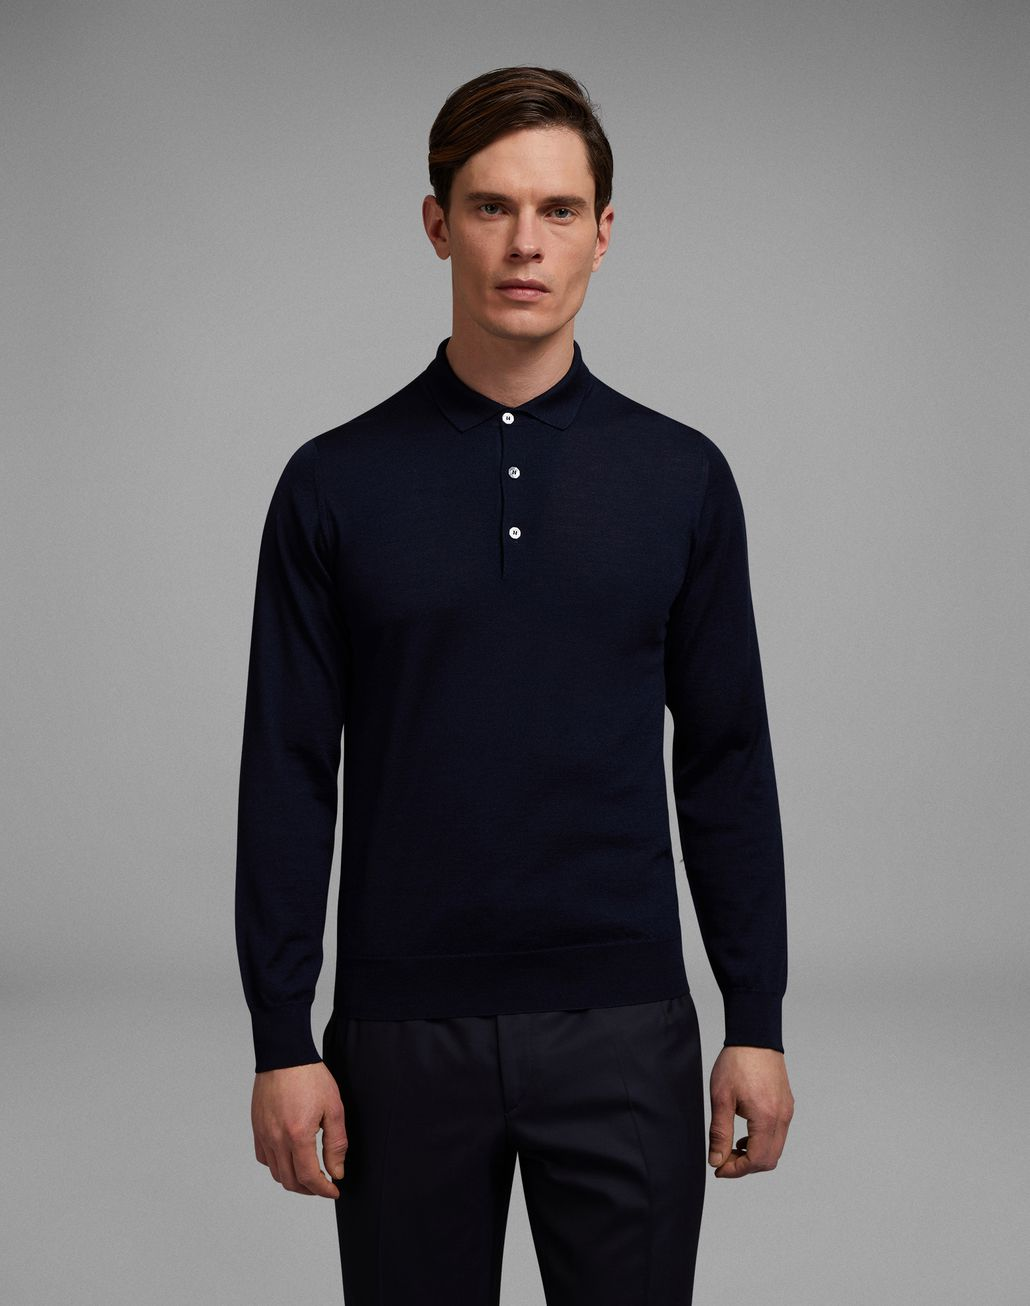 BRIONI 'Essential' Navy Blue Long Sleeved Polo Shirt Knitwear Man r